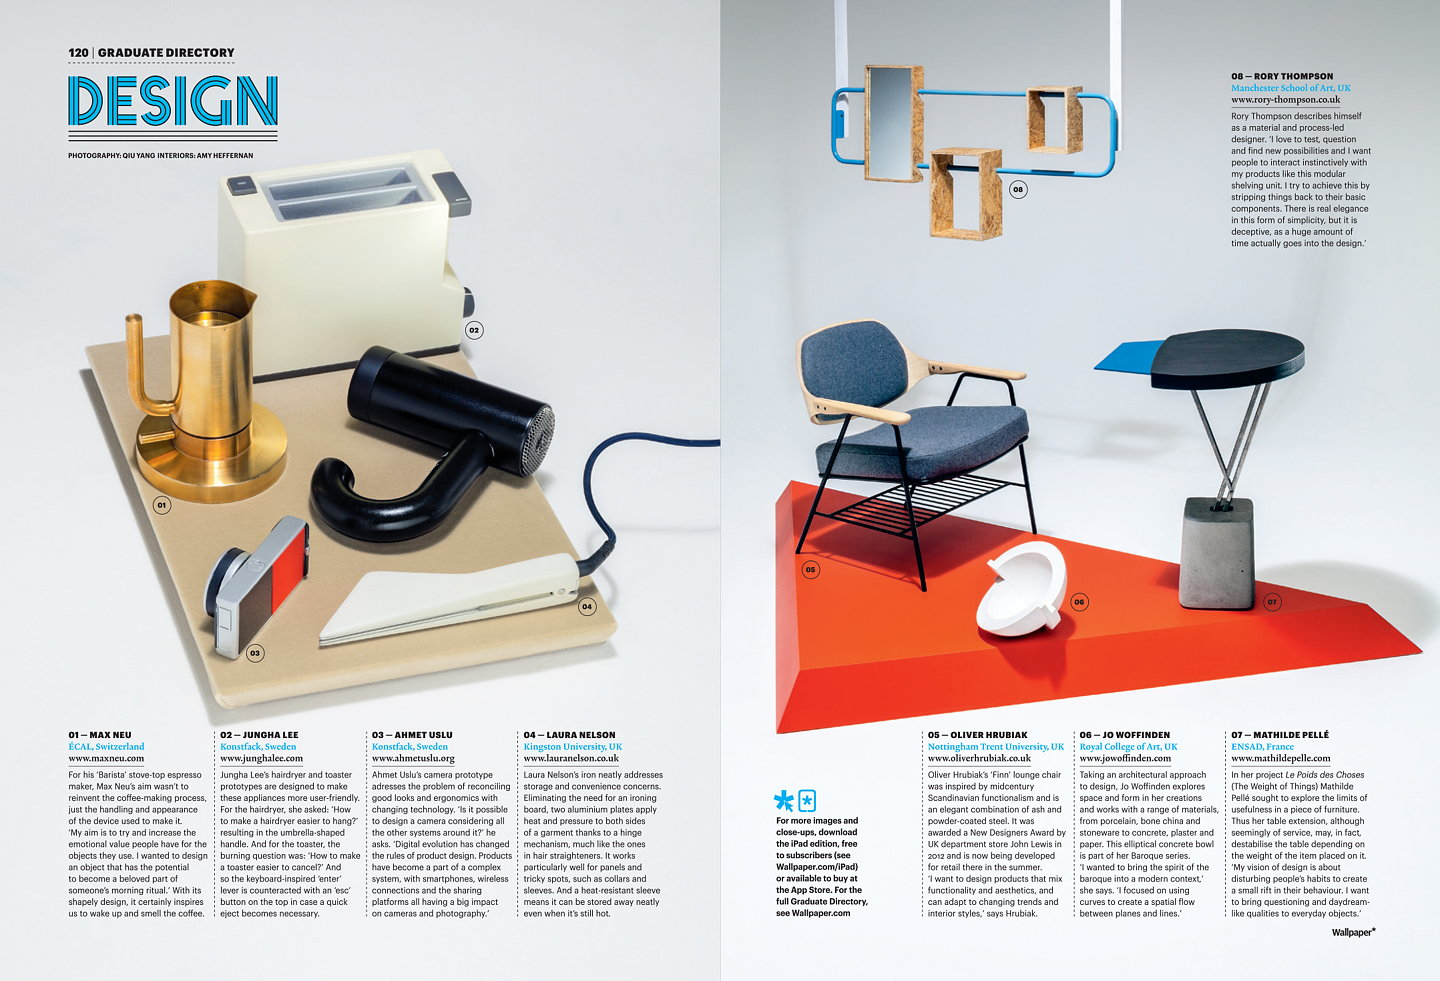 Wallpaper Magazine January 2013 Next Generation